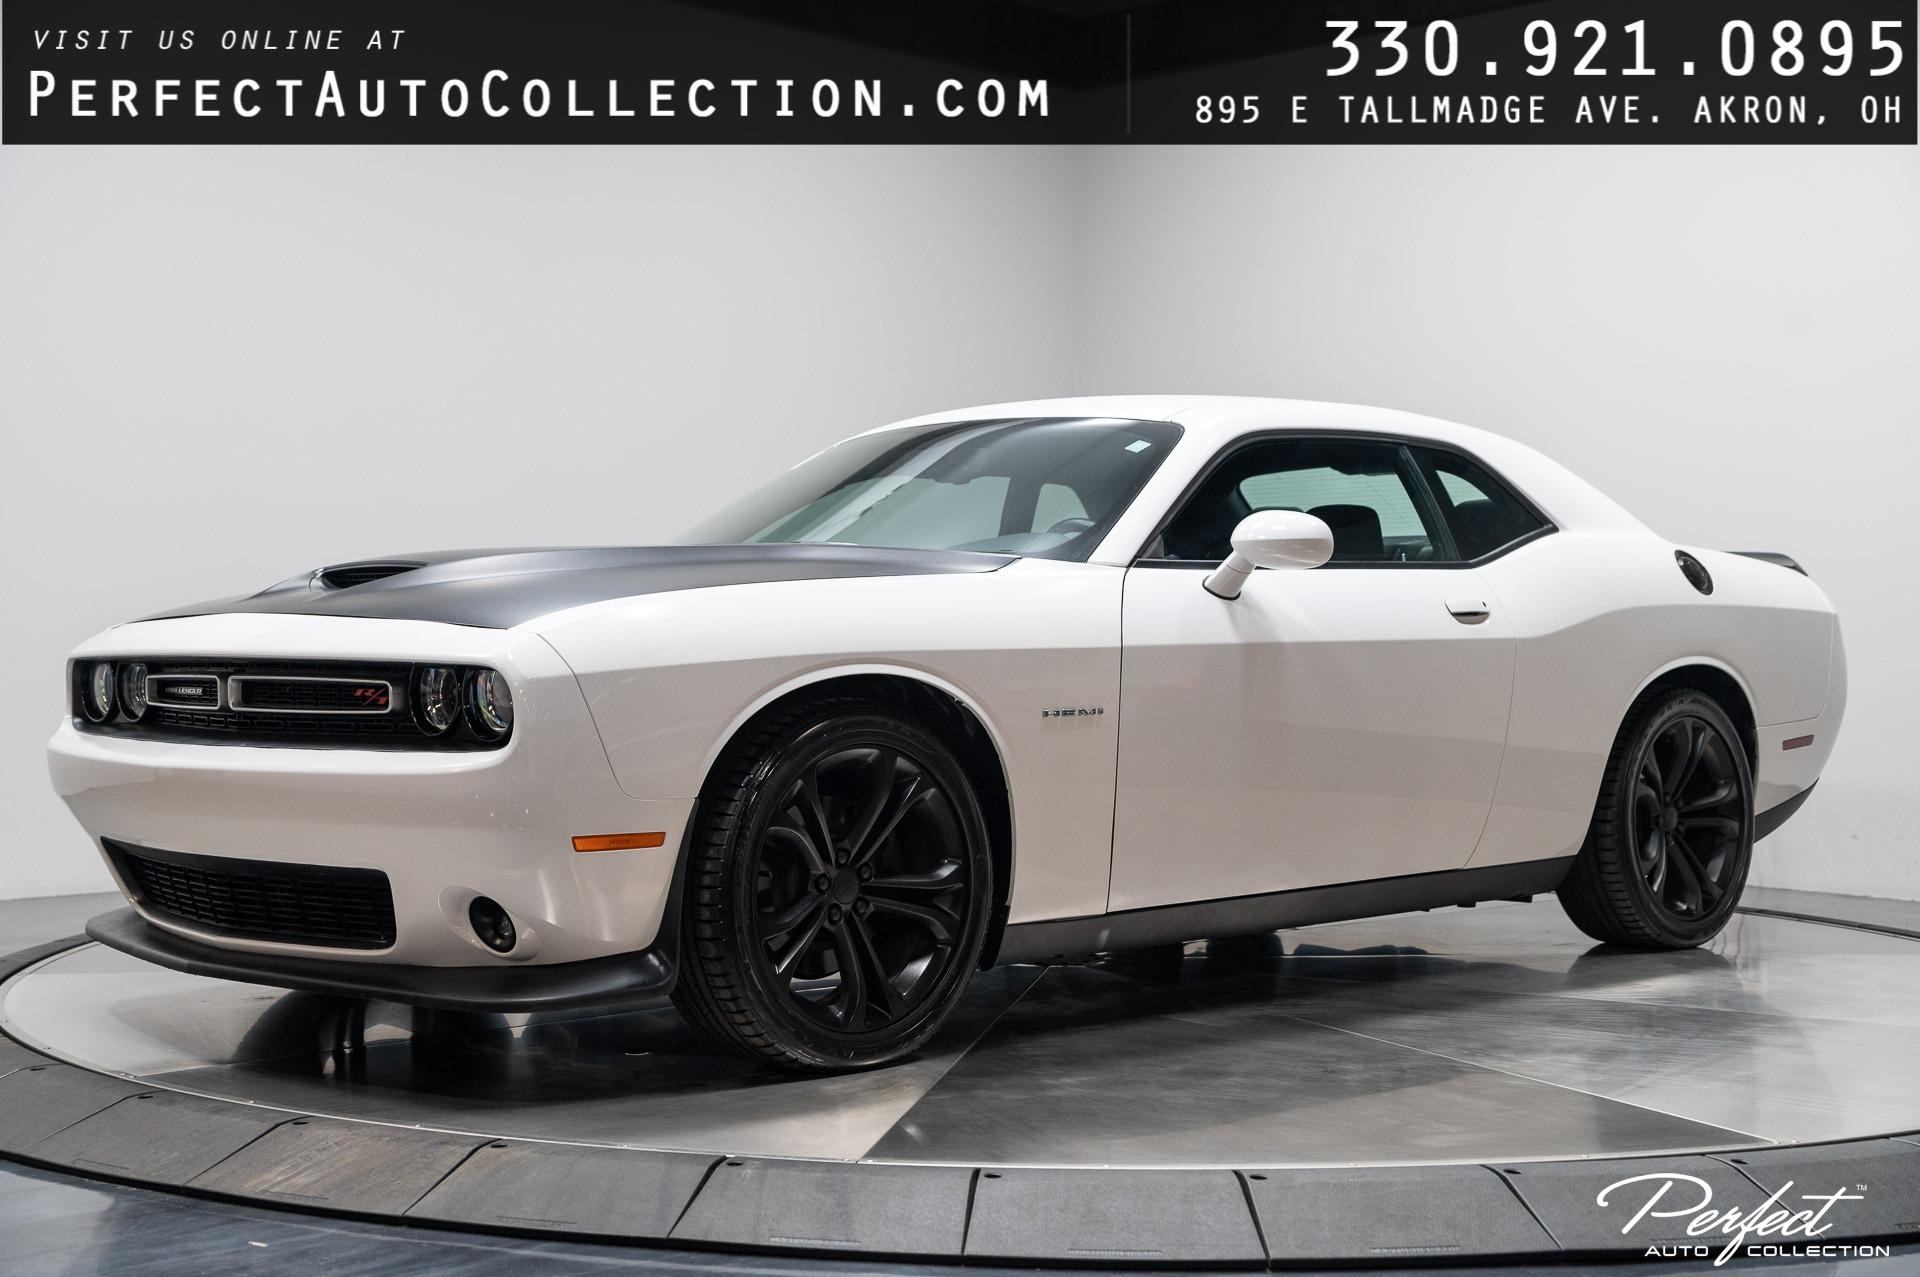 Used 2020 Dodge Challenger R/T for sale $29,993 at Perfect Auto Collection in Akron OH 44310 1